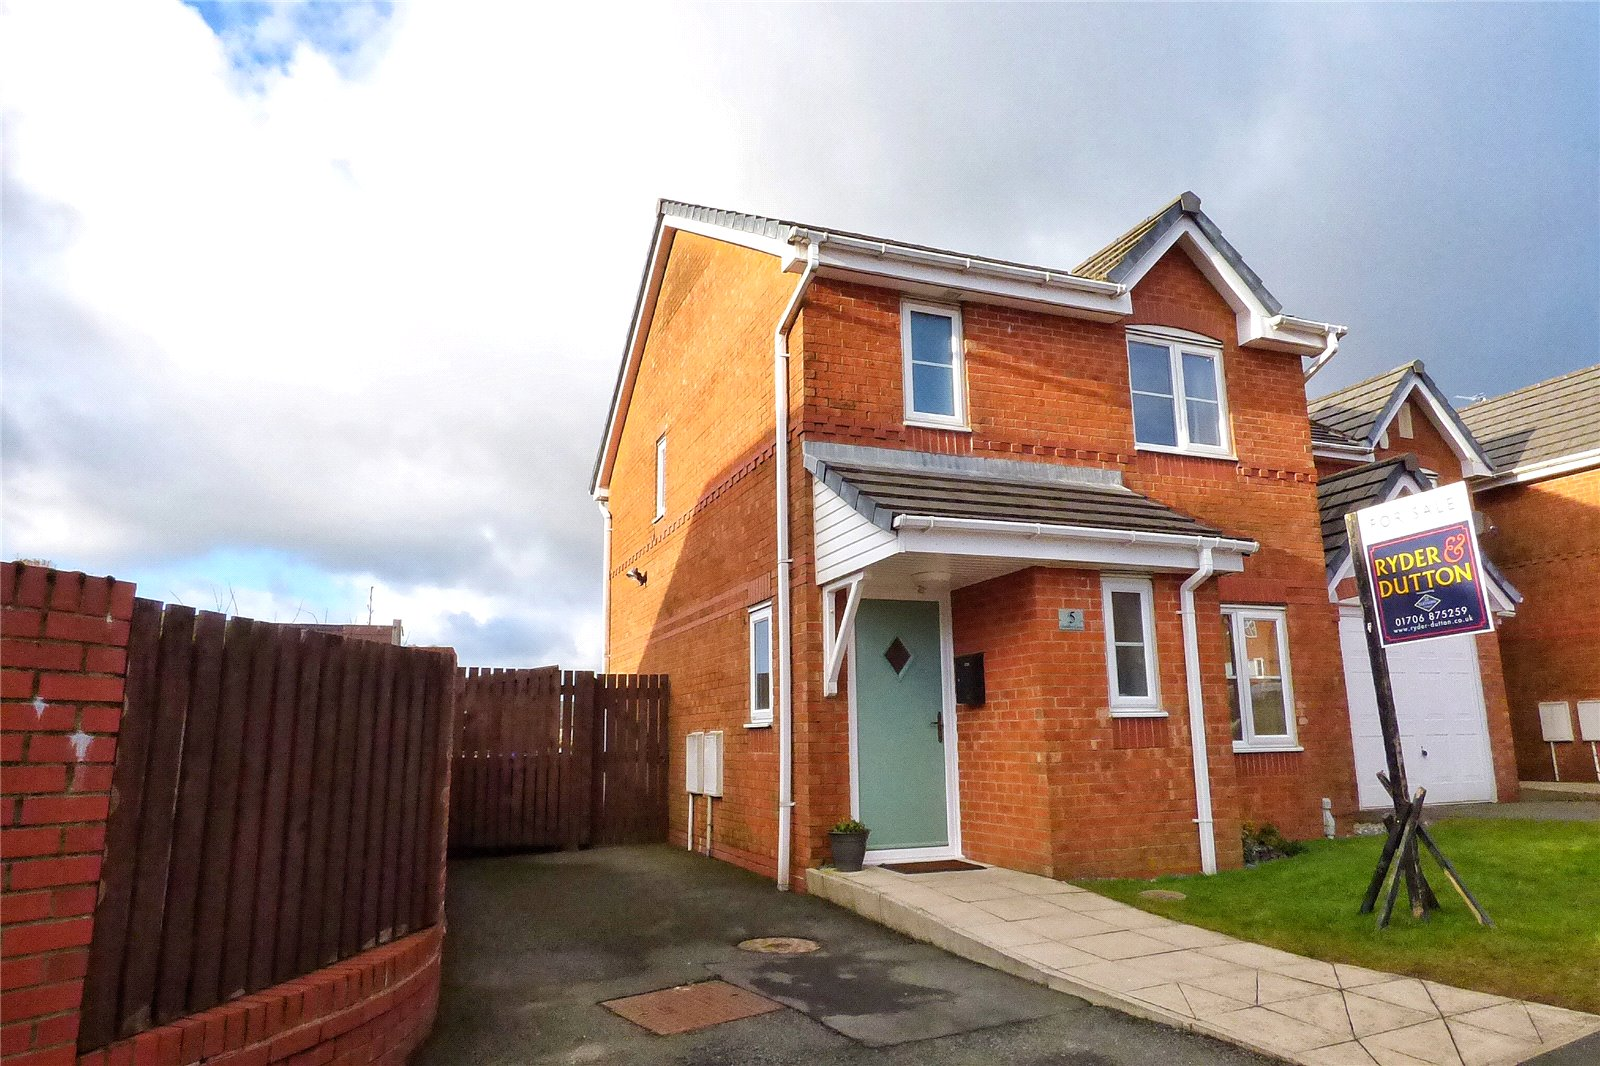 3 Bedrooms Detached House for sale in Sandby Close, Bacup, Lancashire, OL13